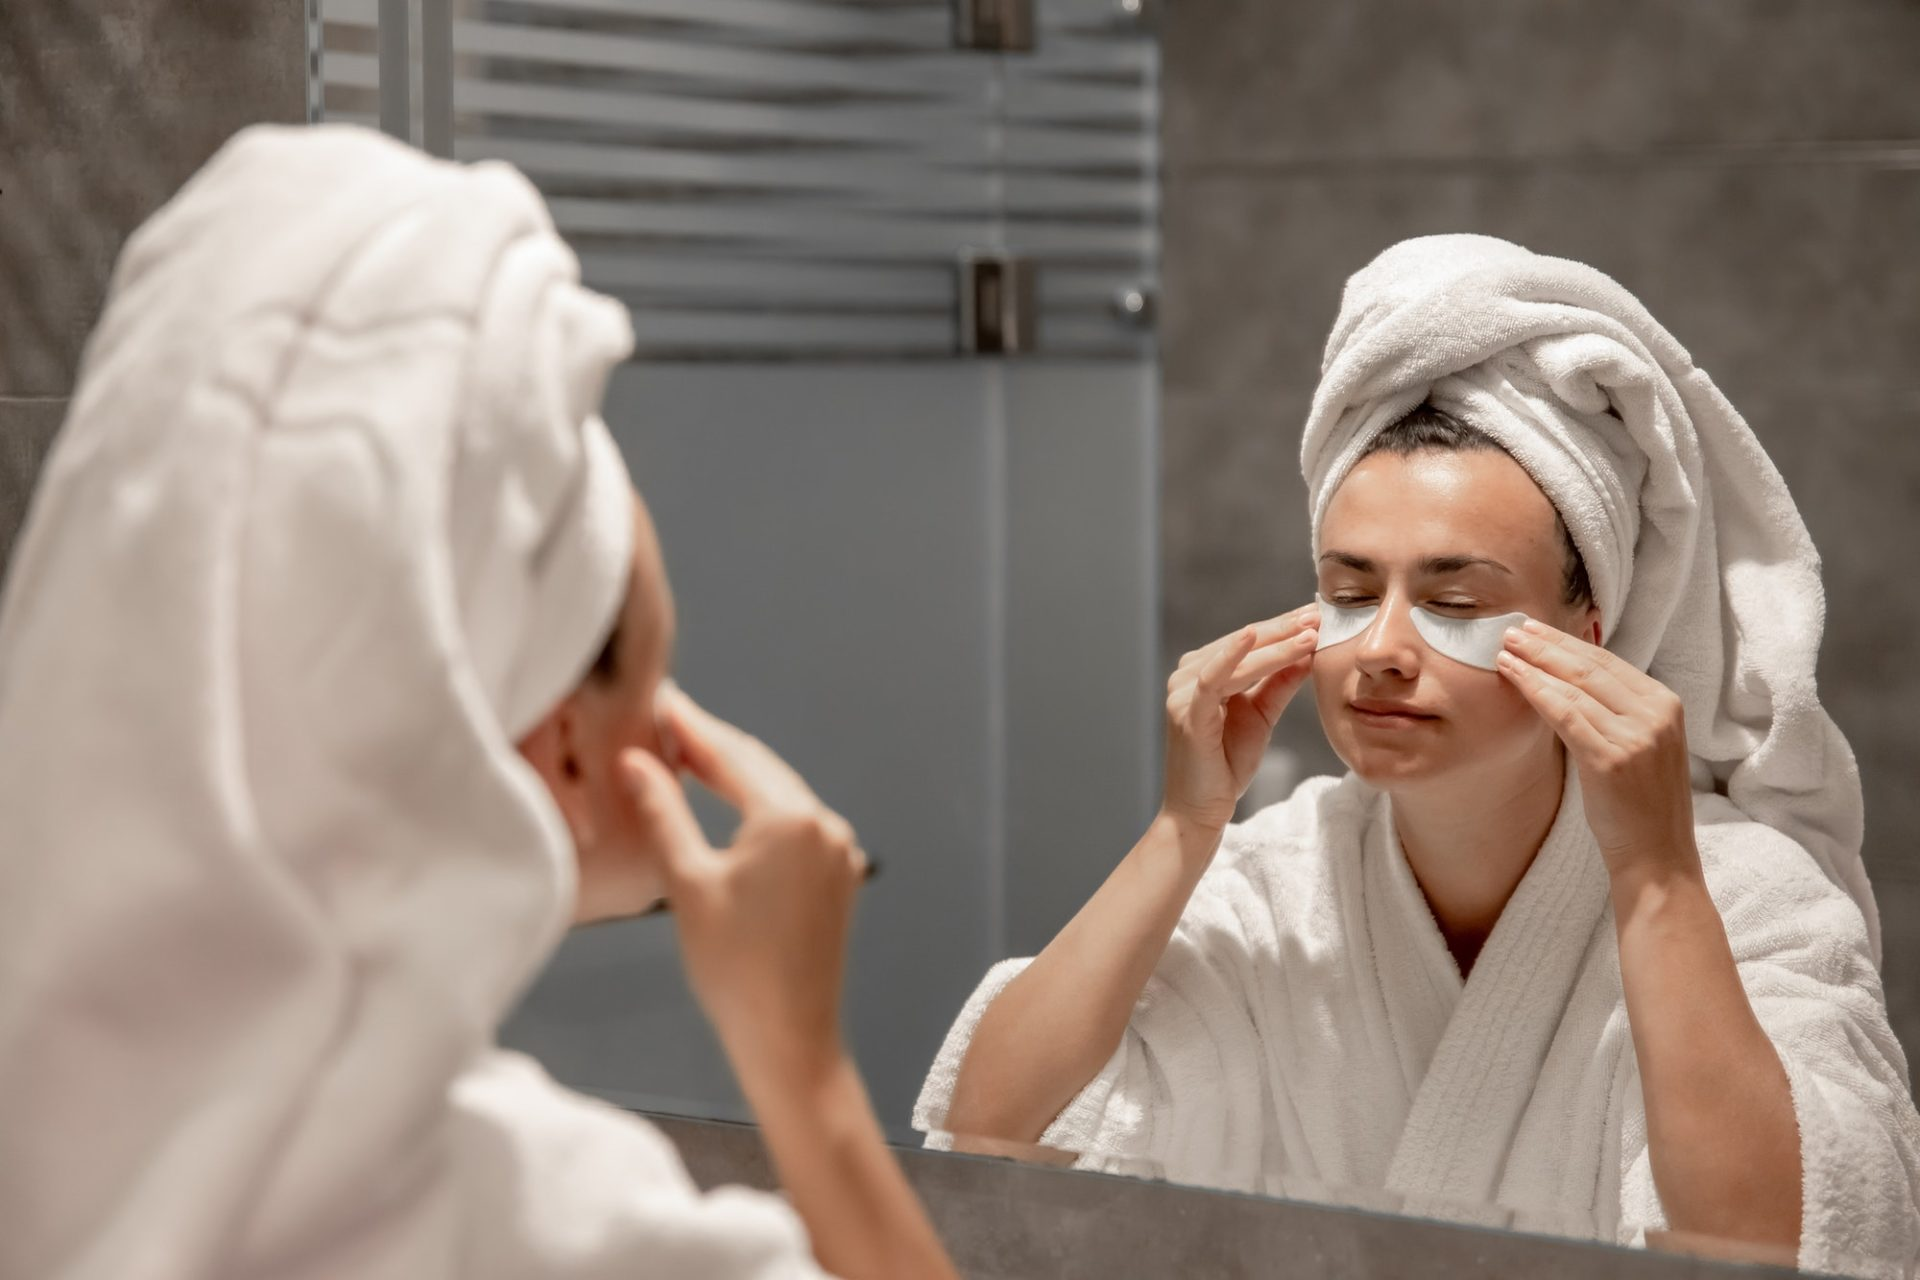 A young woman in a robe and with a towel on her head is putting patches under her eyes.